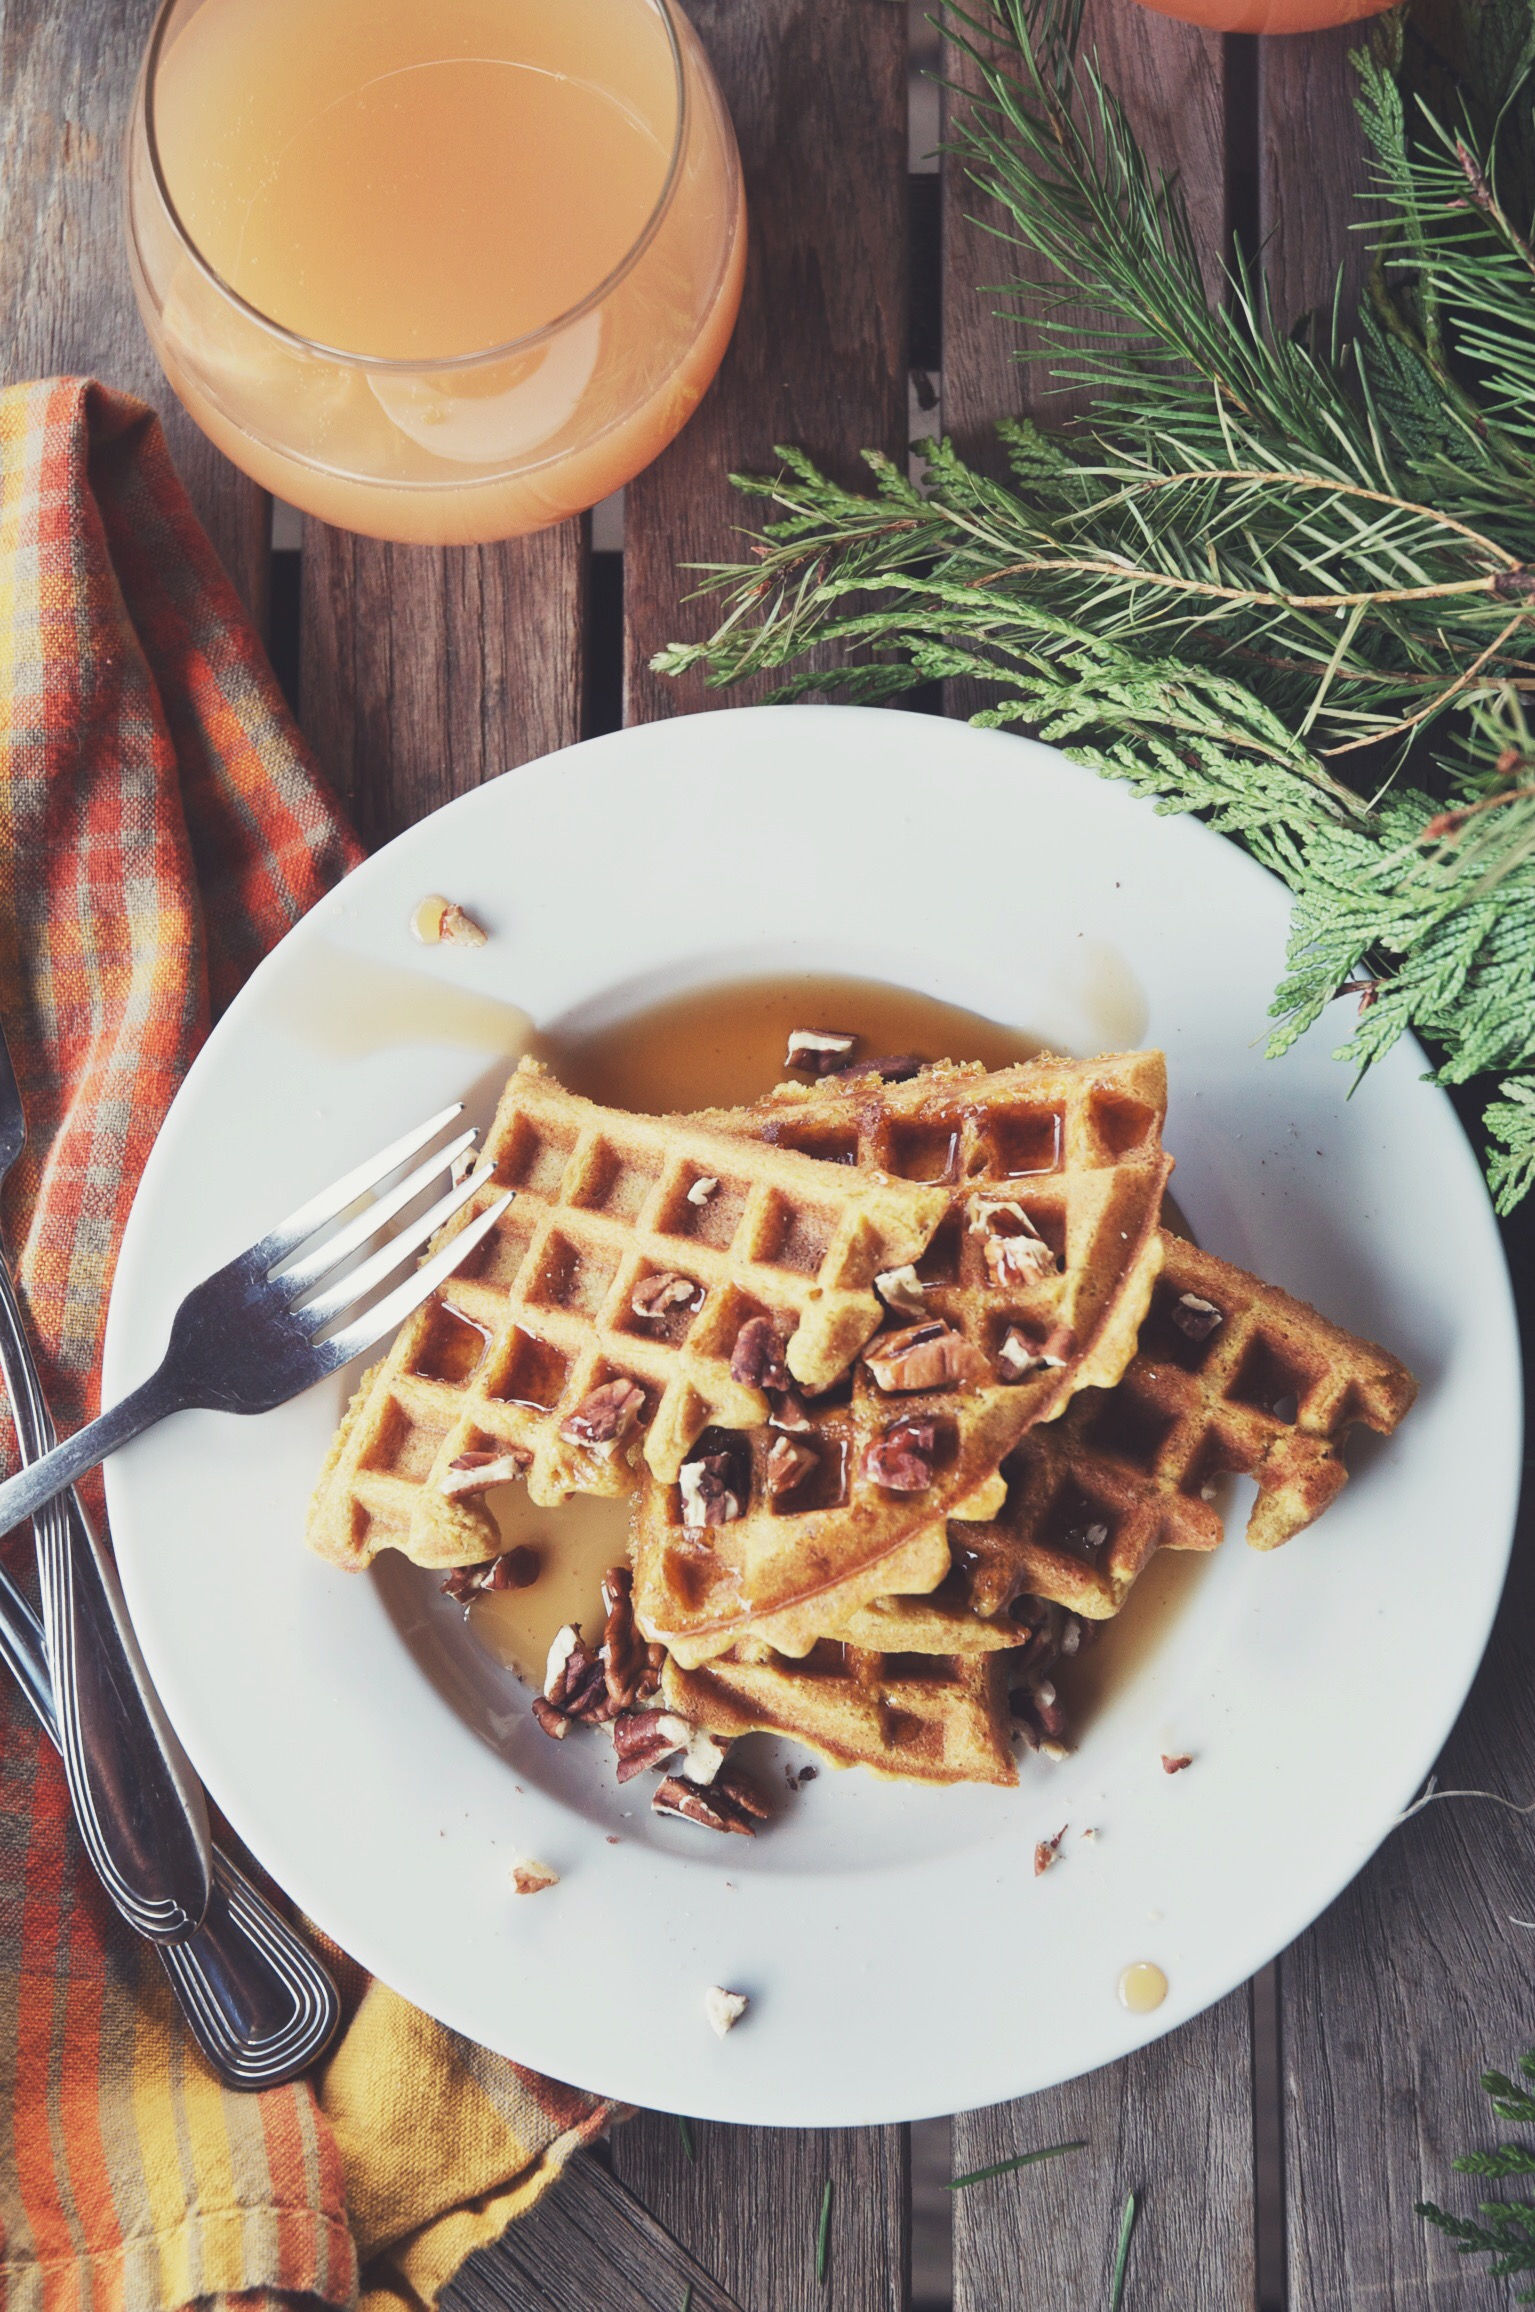 pumpkin oat waffles with mimosas and pine cuttings